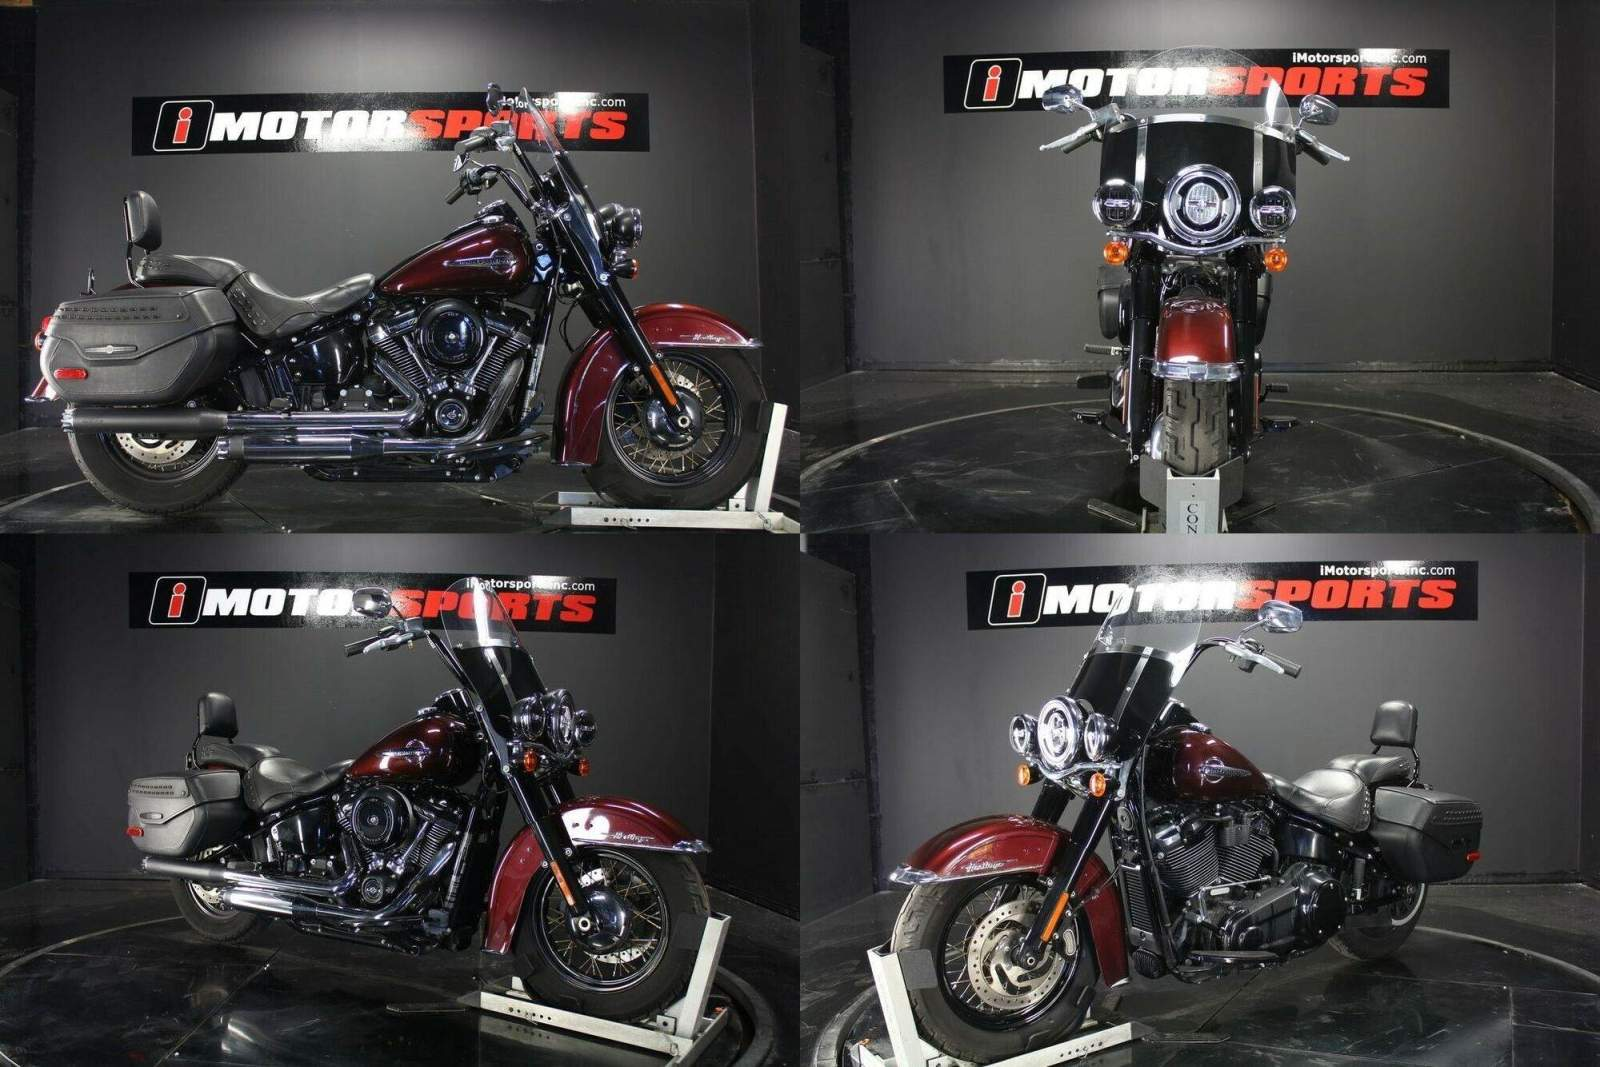 2018 Harley-Davidson FLHC - Softail Heritage Classic MAR used for sale